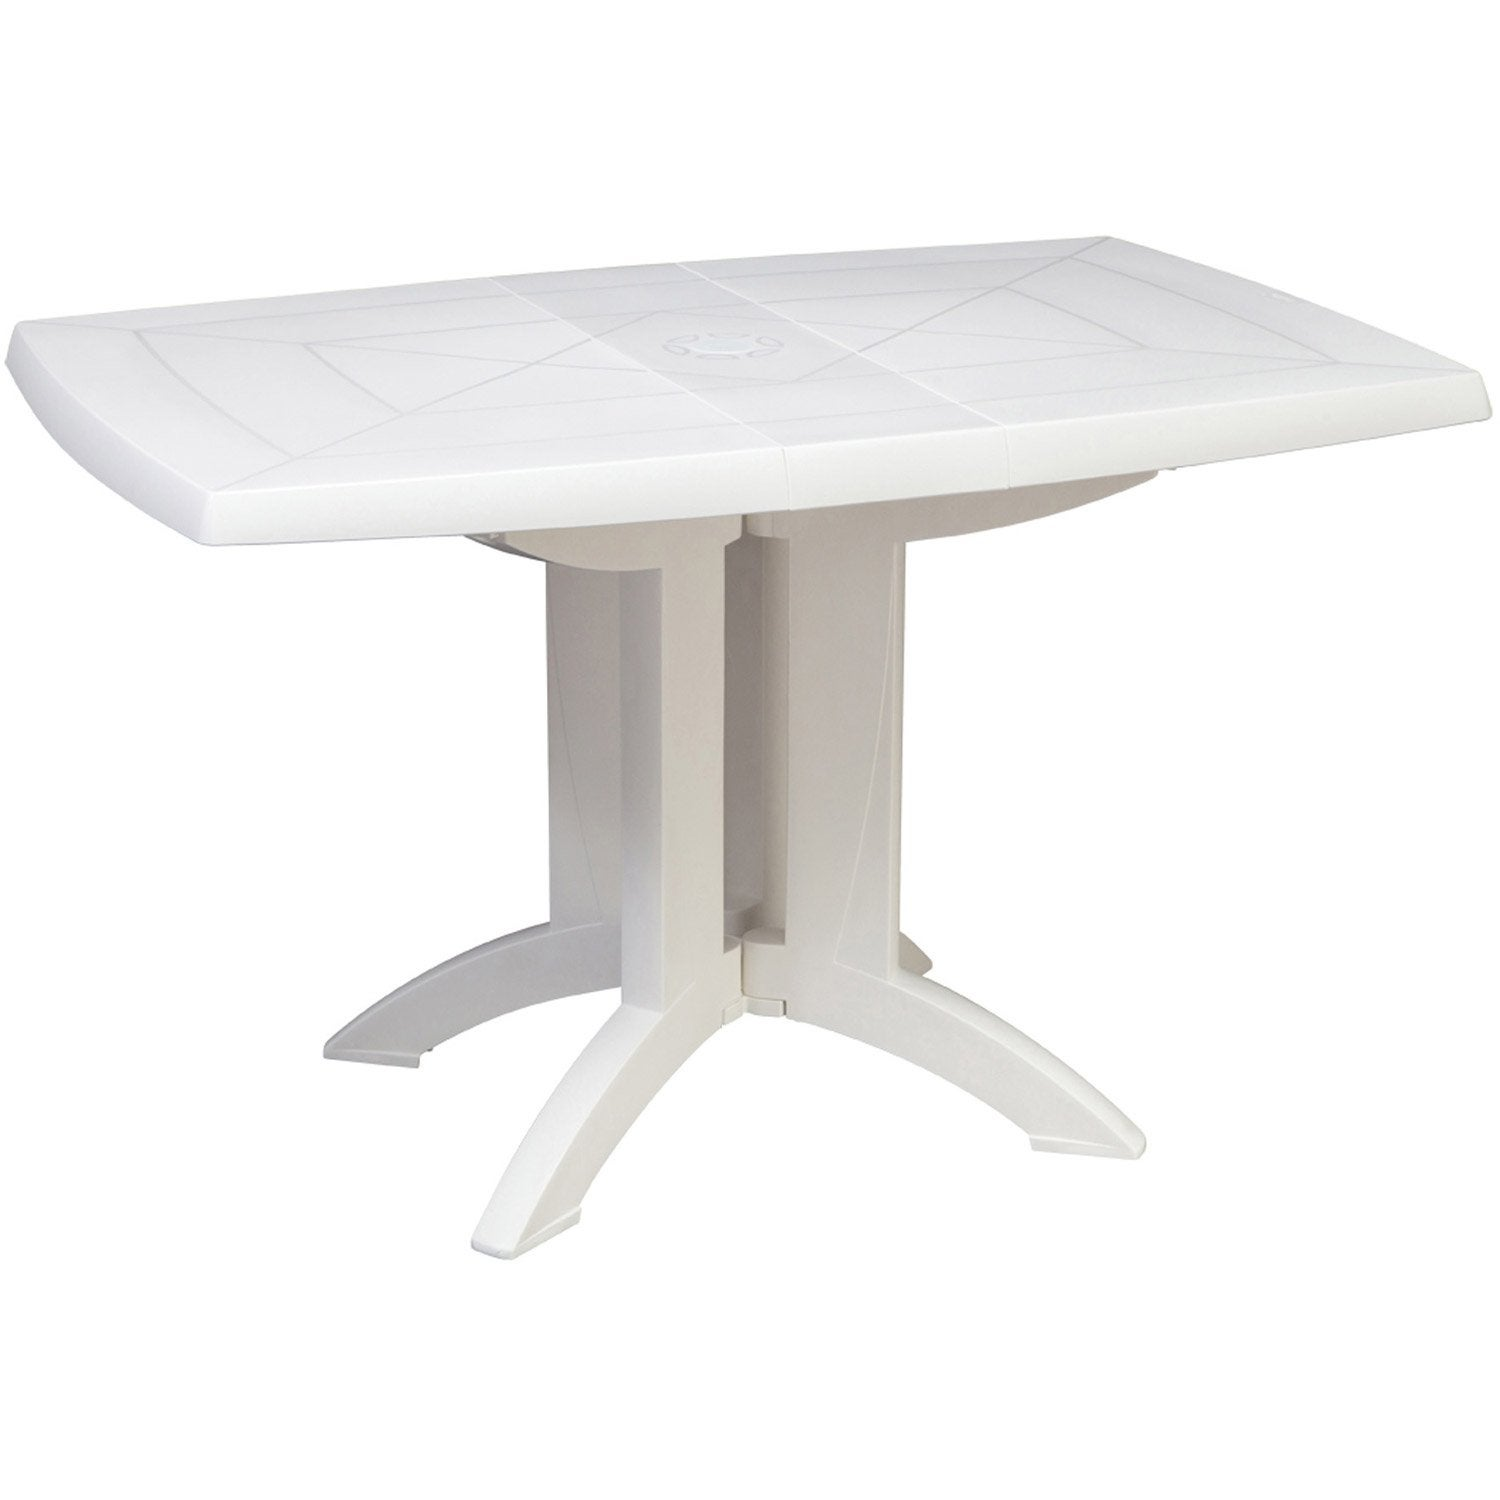 Table de jardin grosfillex v ga rectangulaire blanc 4 for Table de cuisine pliante leroy merlin